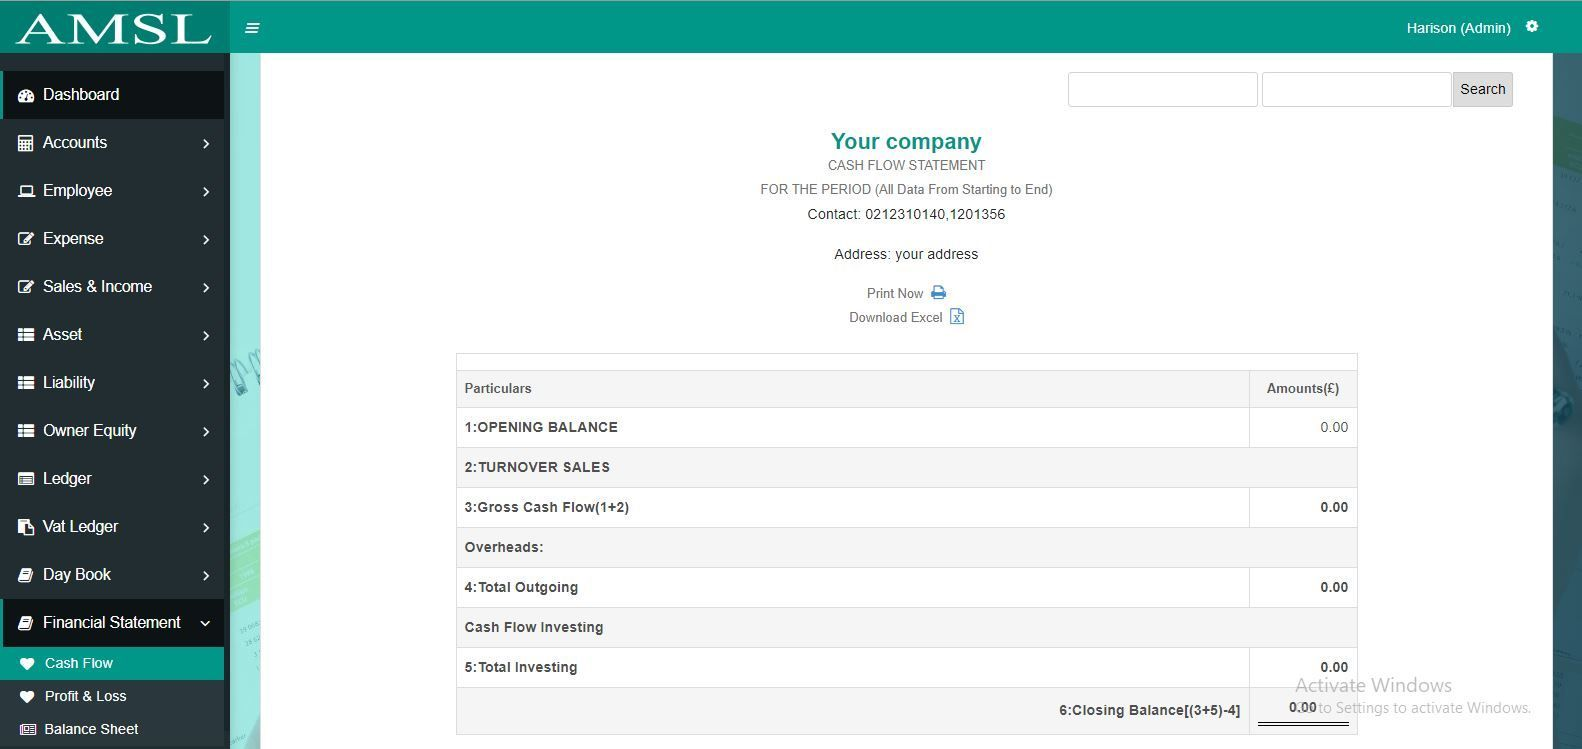 AMSL - Service Based Accounting Management System  Screenshot 9